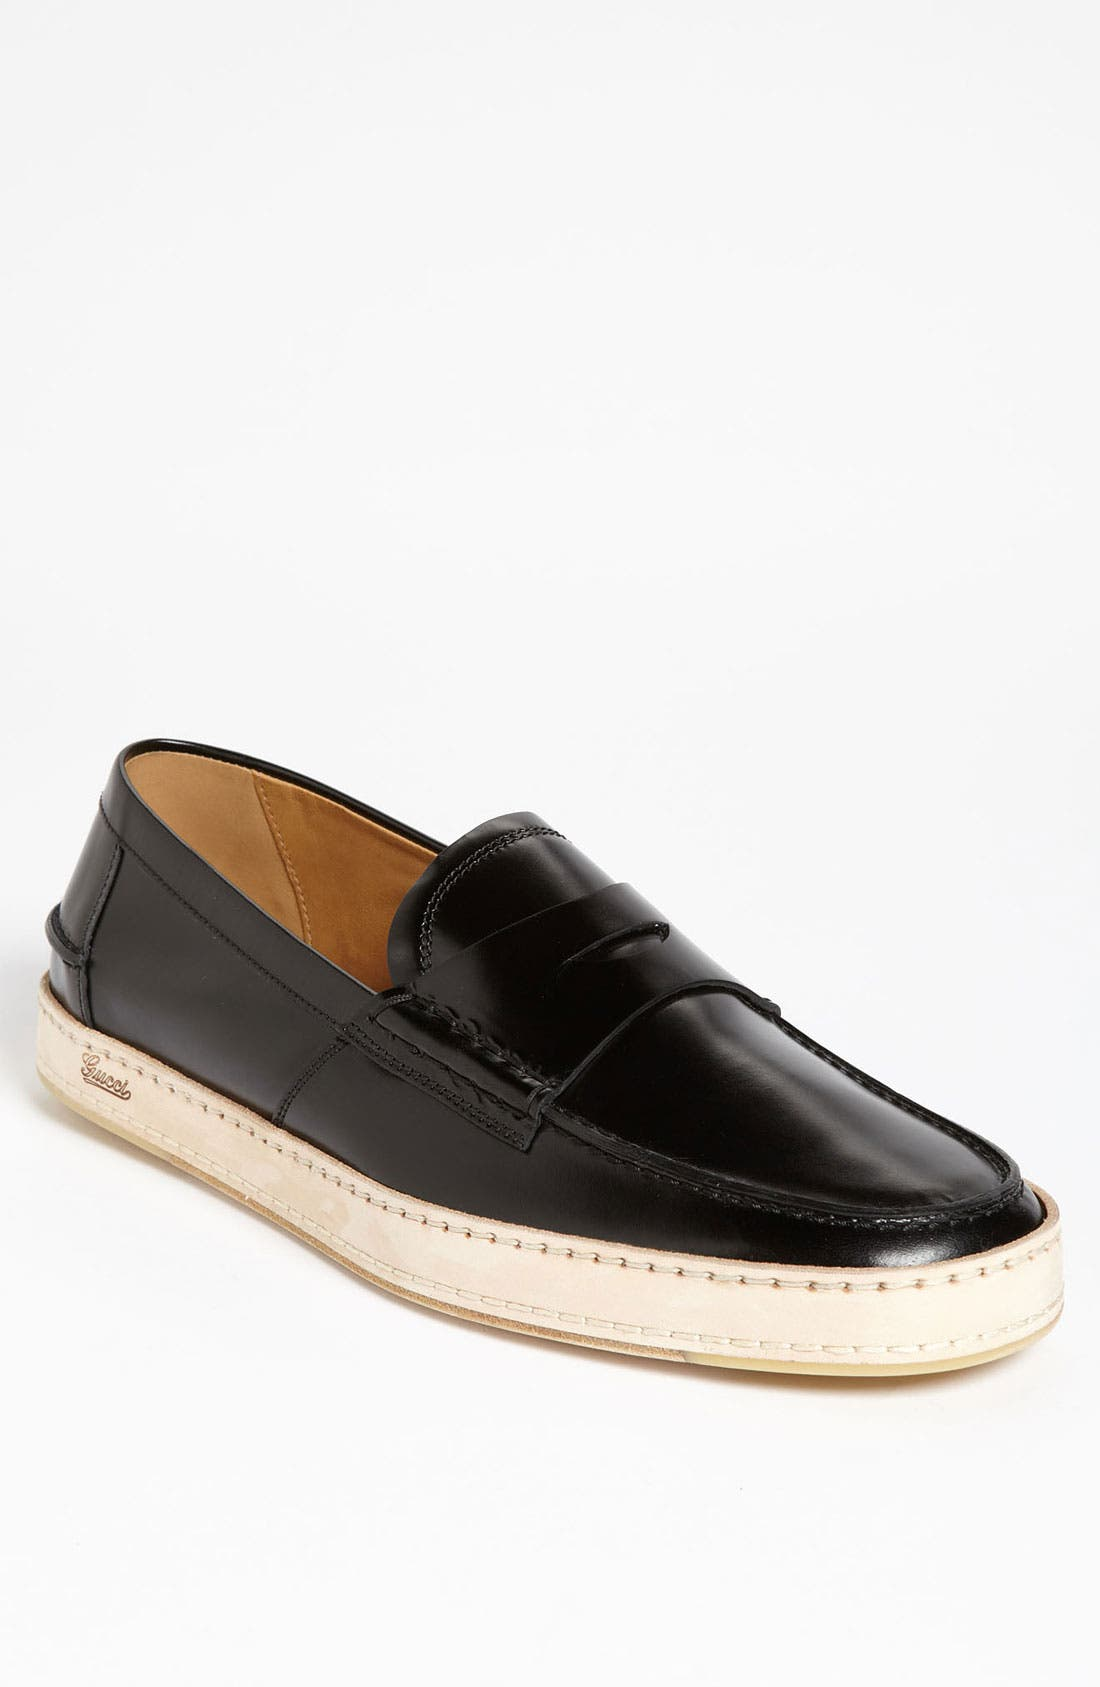 Alternate Image 1 Selected - Gucci 'Gand' Penny Loafer